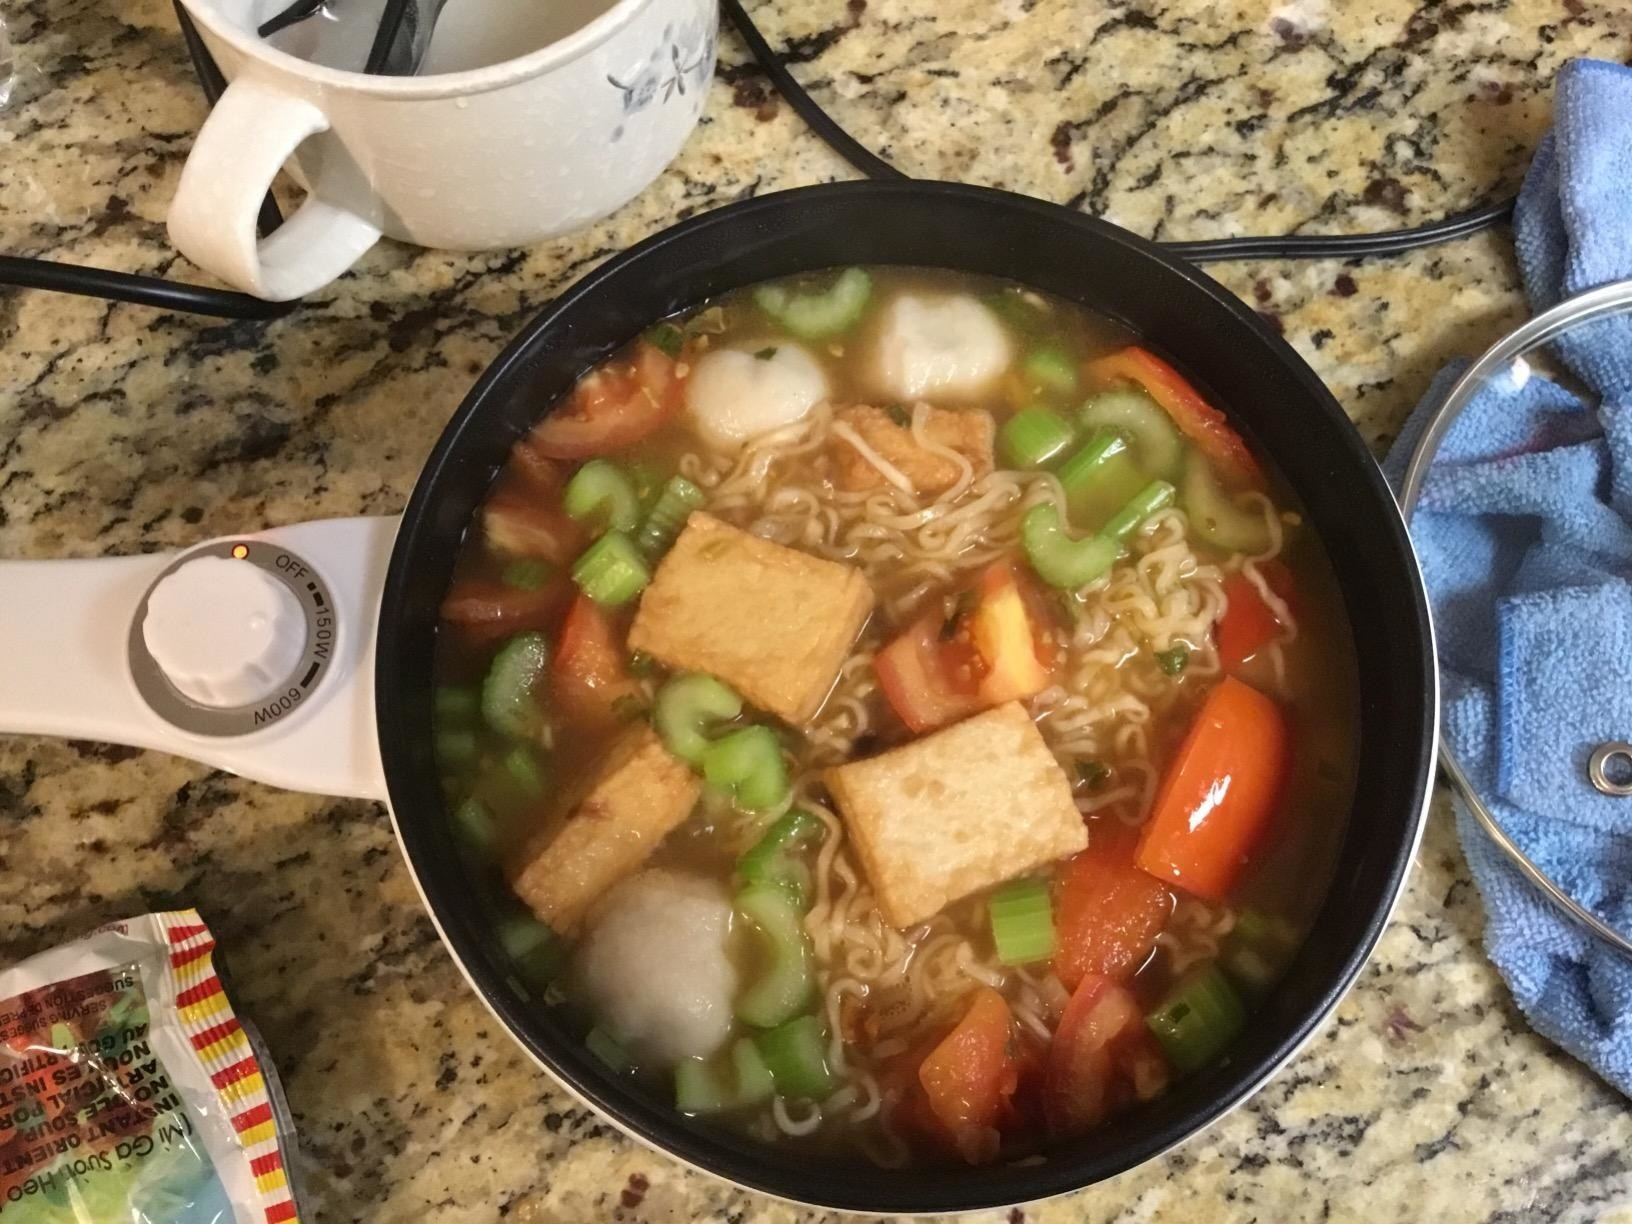 Reviewer's white electric hot pot filled with ramen noodles, veggies, and tofu